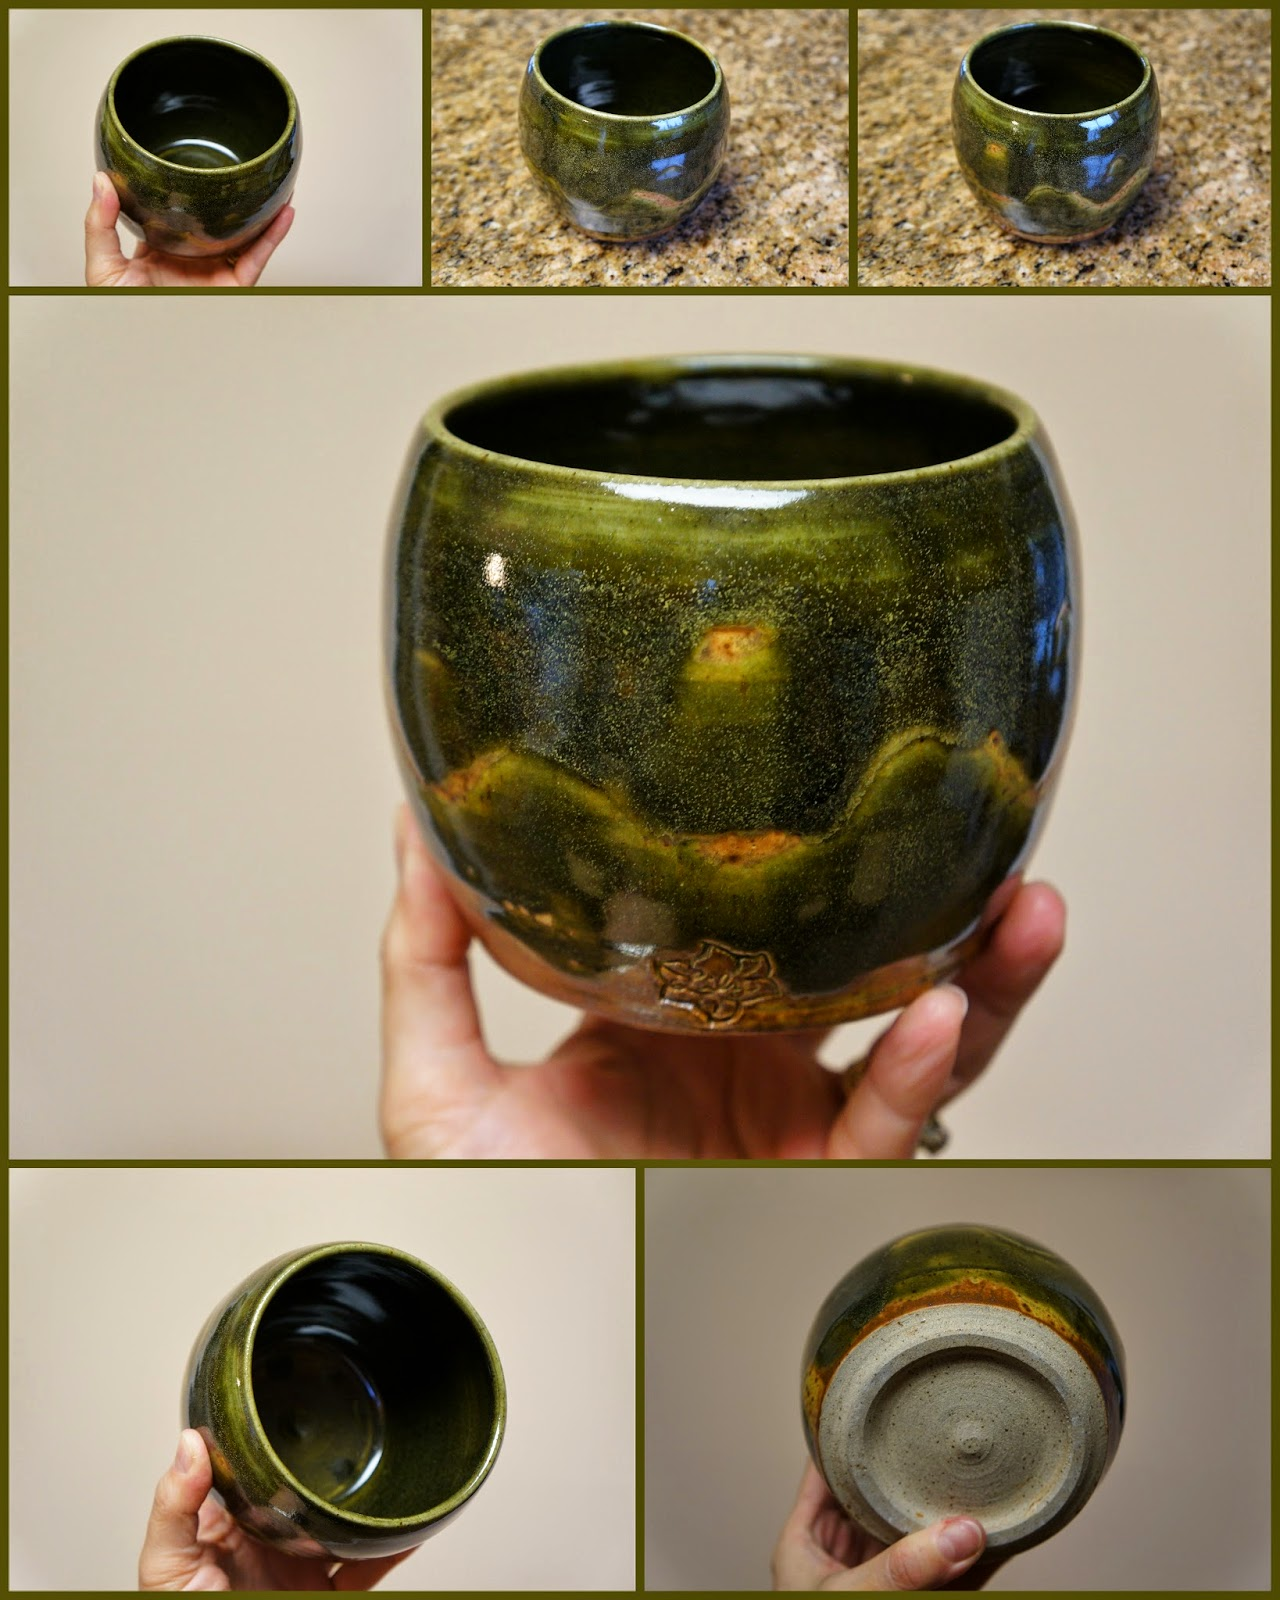 Nice handmade pottery / stoneware thrown vase with wax resist design.